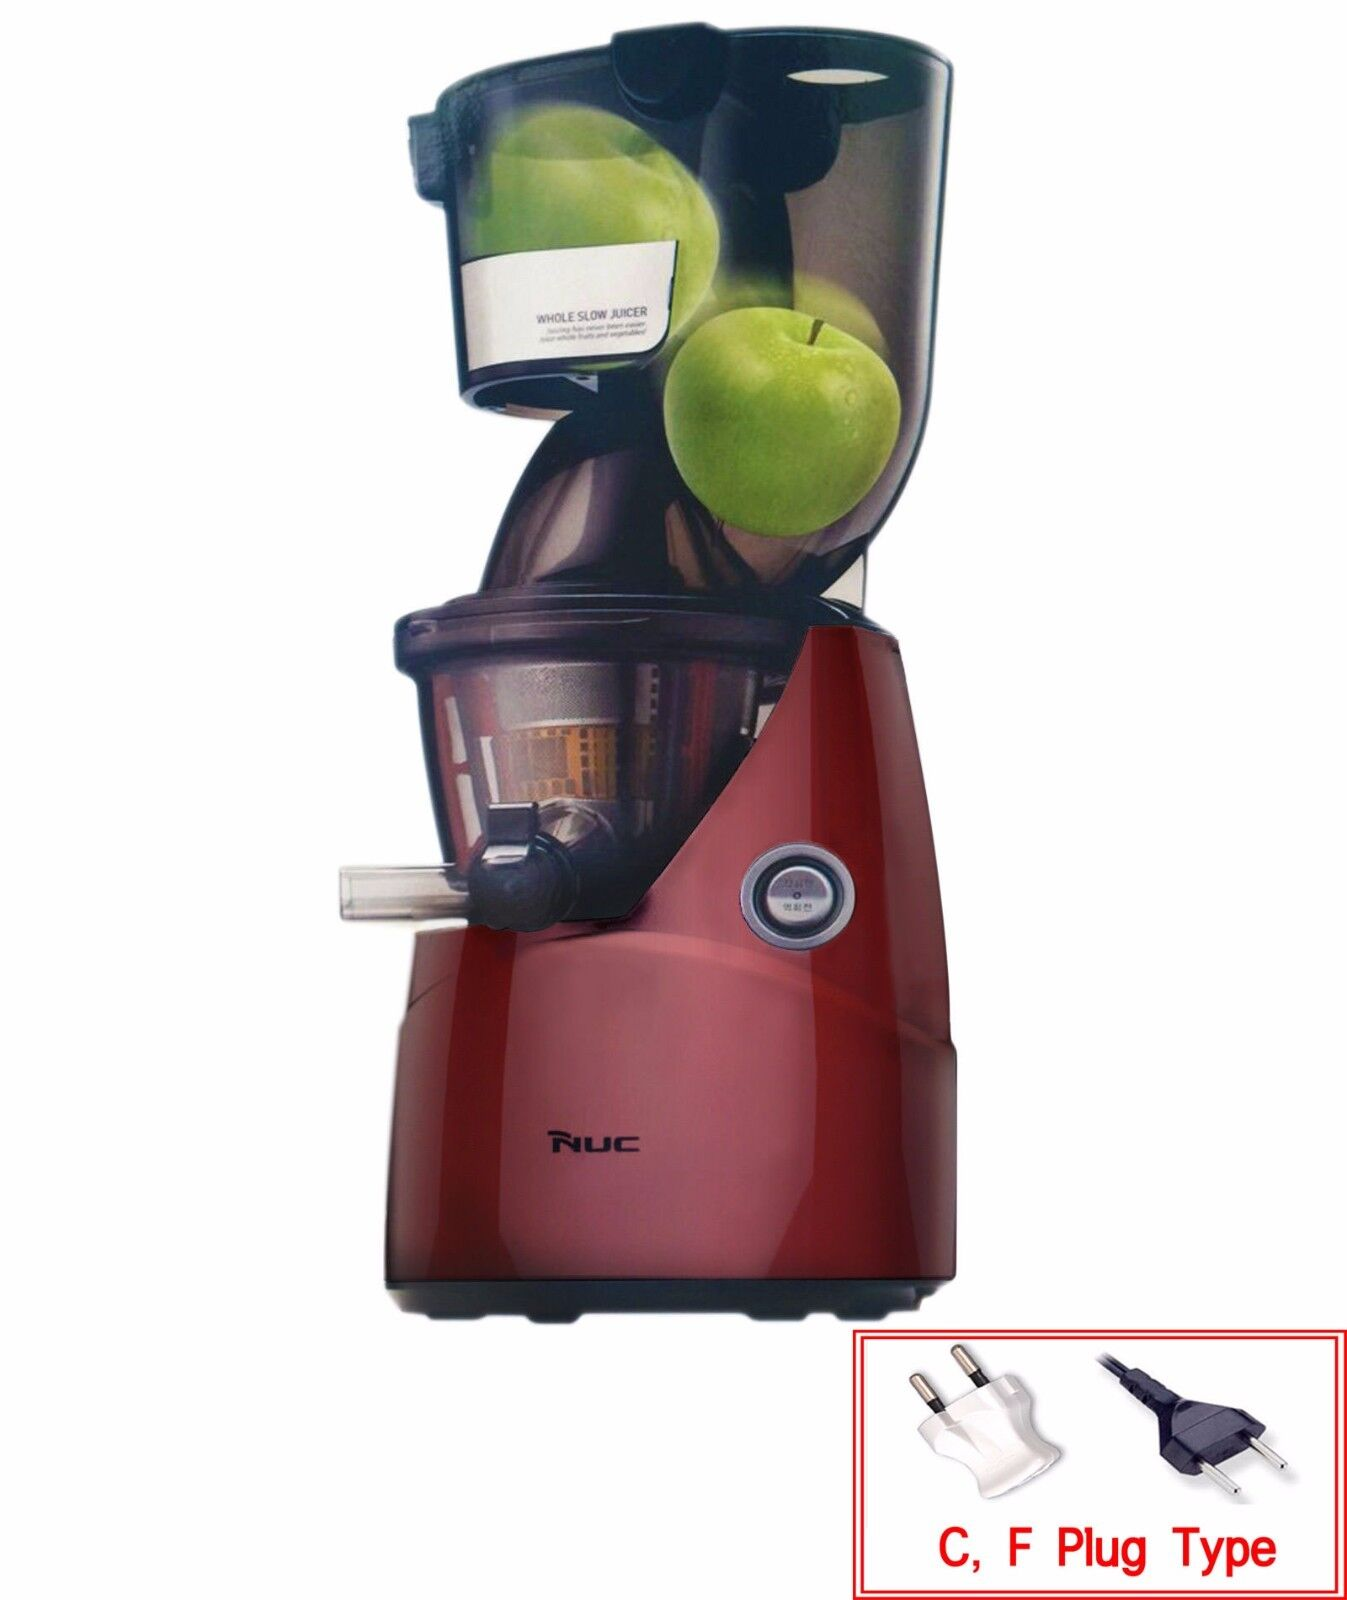 Nuc Kuvings Whole Slow Juicer : NUC Kuvings Whole Mouth Slow Fruit Juicer KJ-622R Juice Extractor (B6000PR) NEW! CAD $506.22 ...